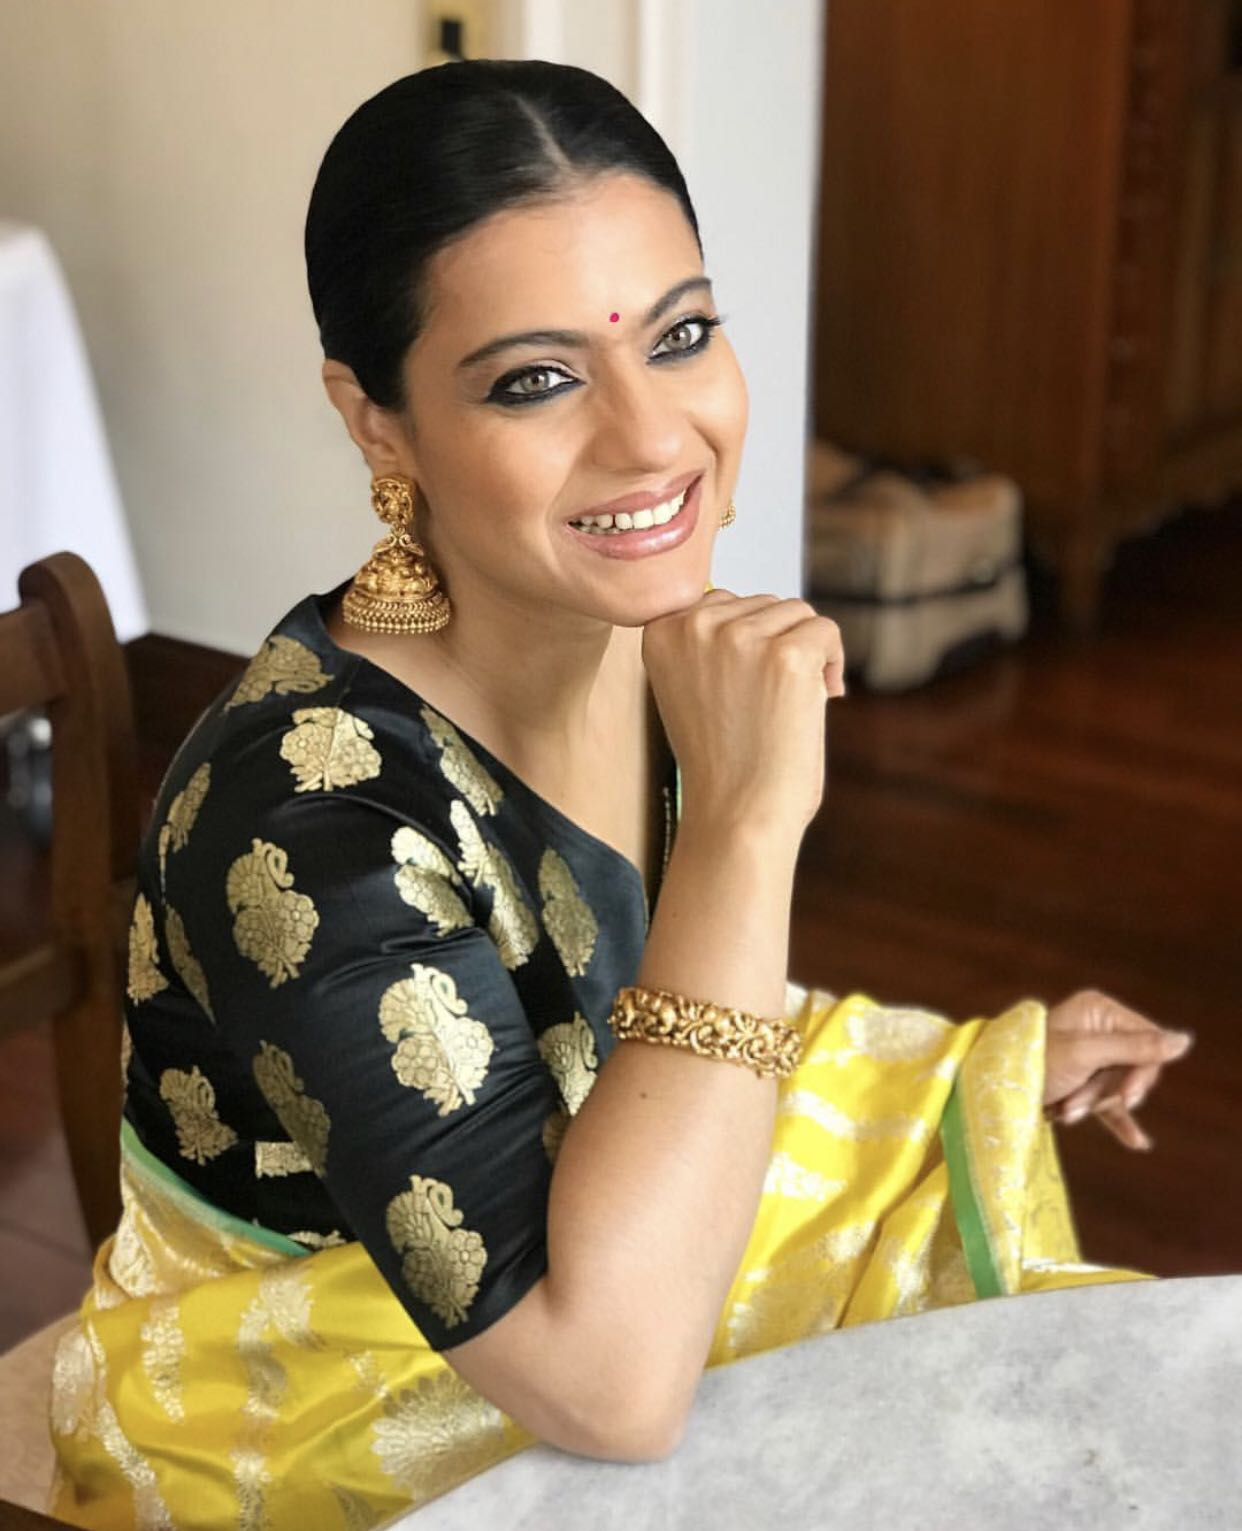 kajol makeup and hair smiling picture from radhika mehra instagram yellow saree bun